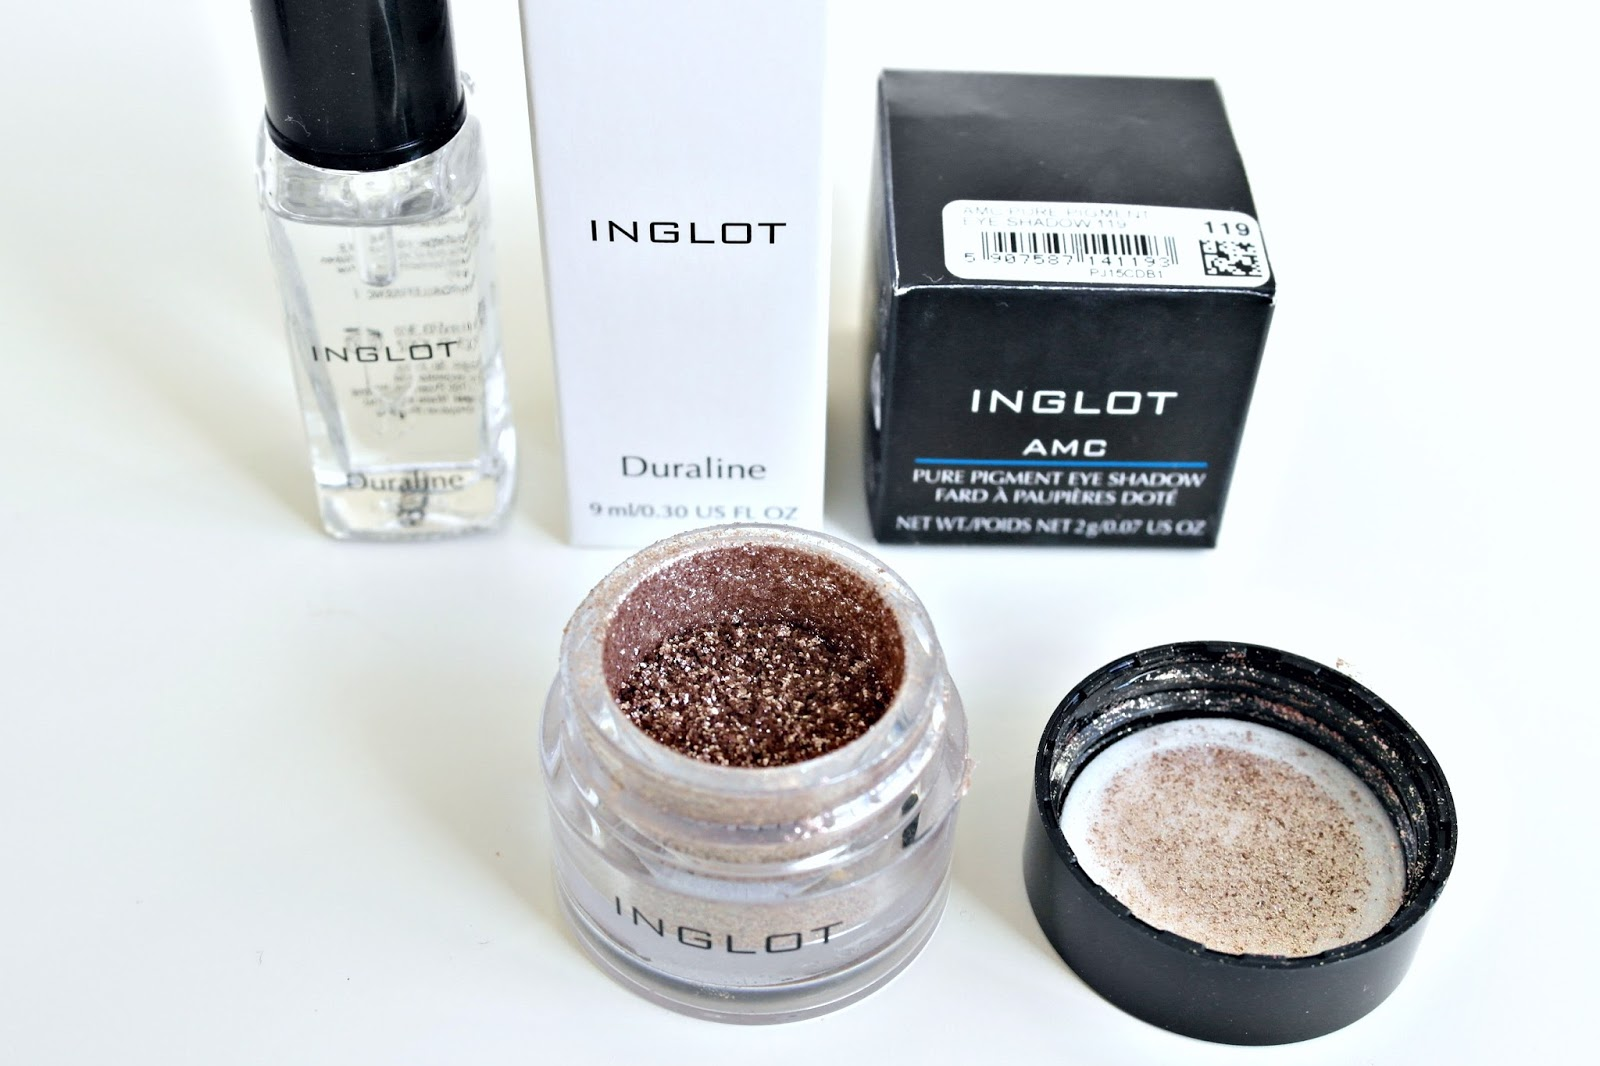 Inglot AMC Pure Pigment in shade 119